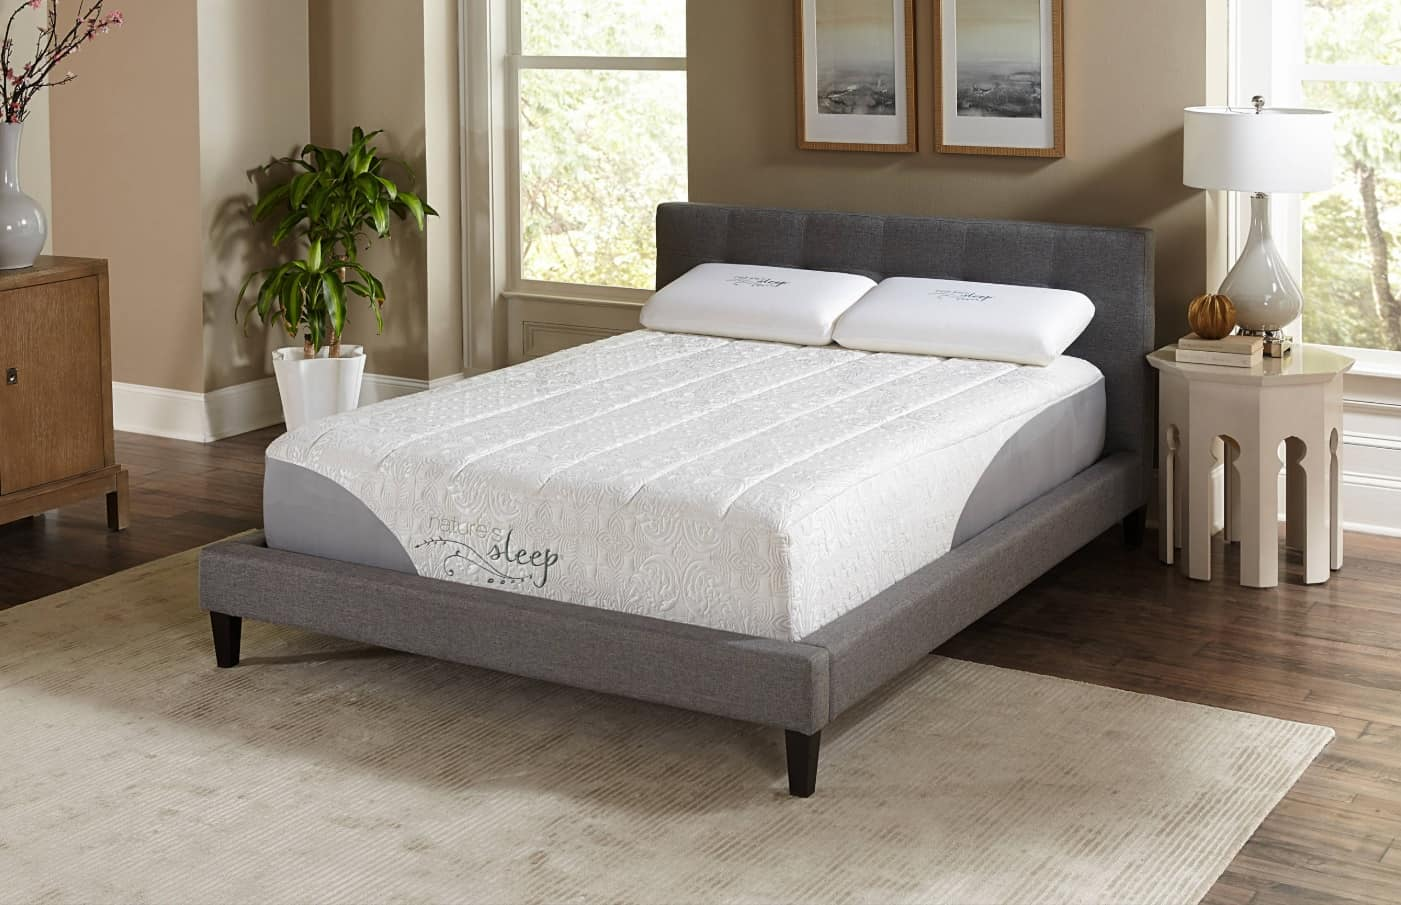 How to Find the Best Foam Mattress. Casual styled bedroom with simple platform bed and high mattress